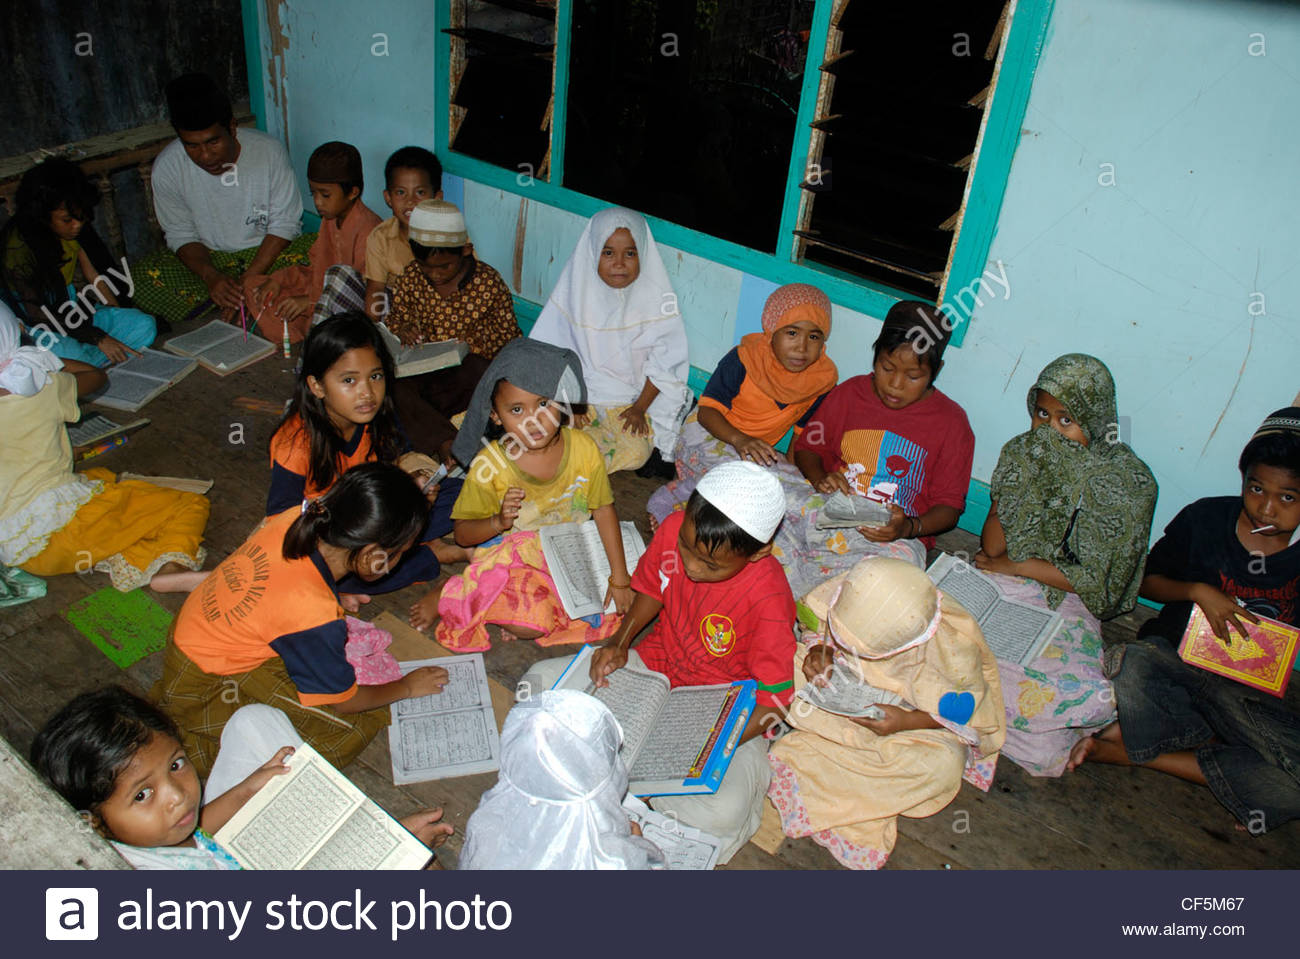 A group of Muslim boys and girls aged 7 - 8 years old sitting on the floor learning to read the Koran in Arabic - Stock Image